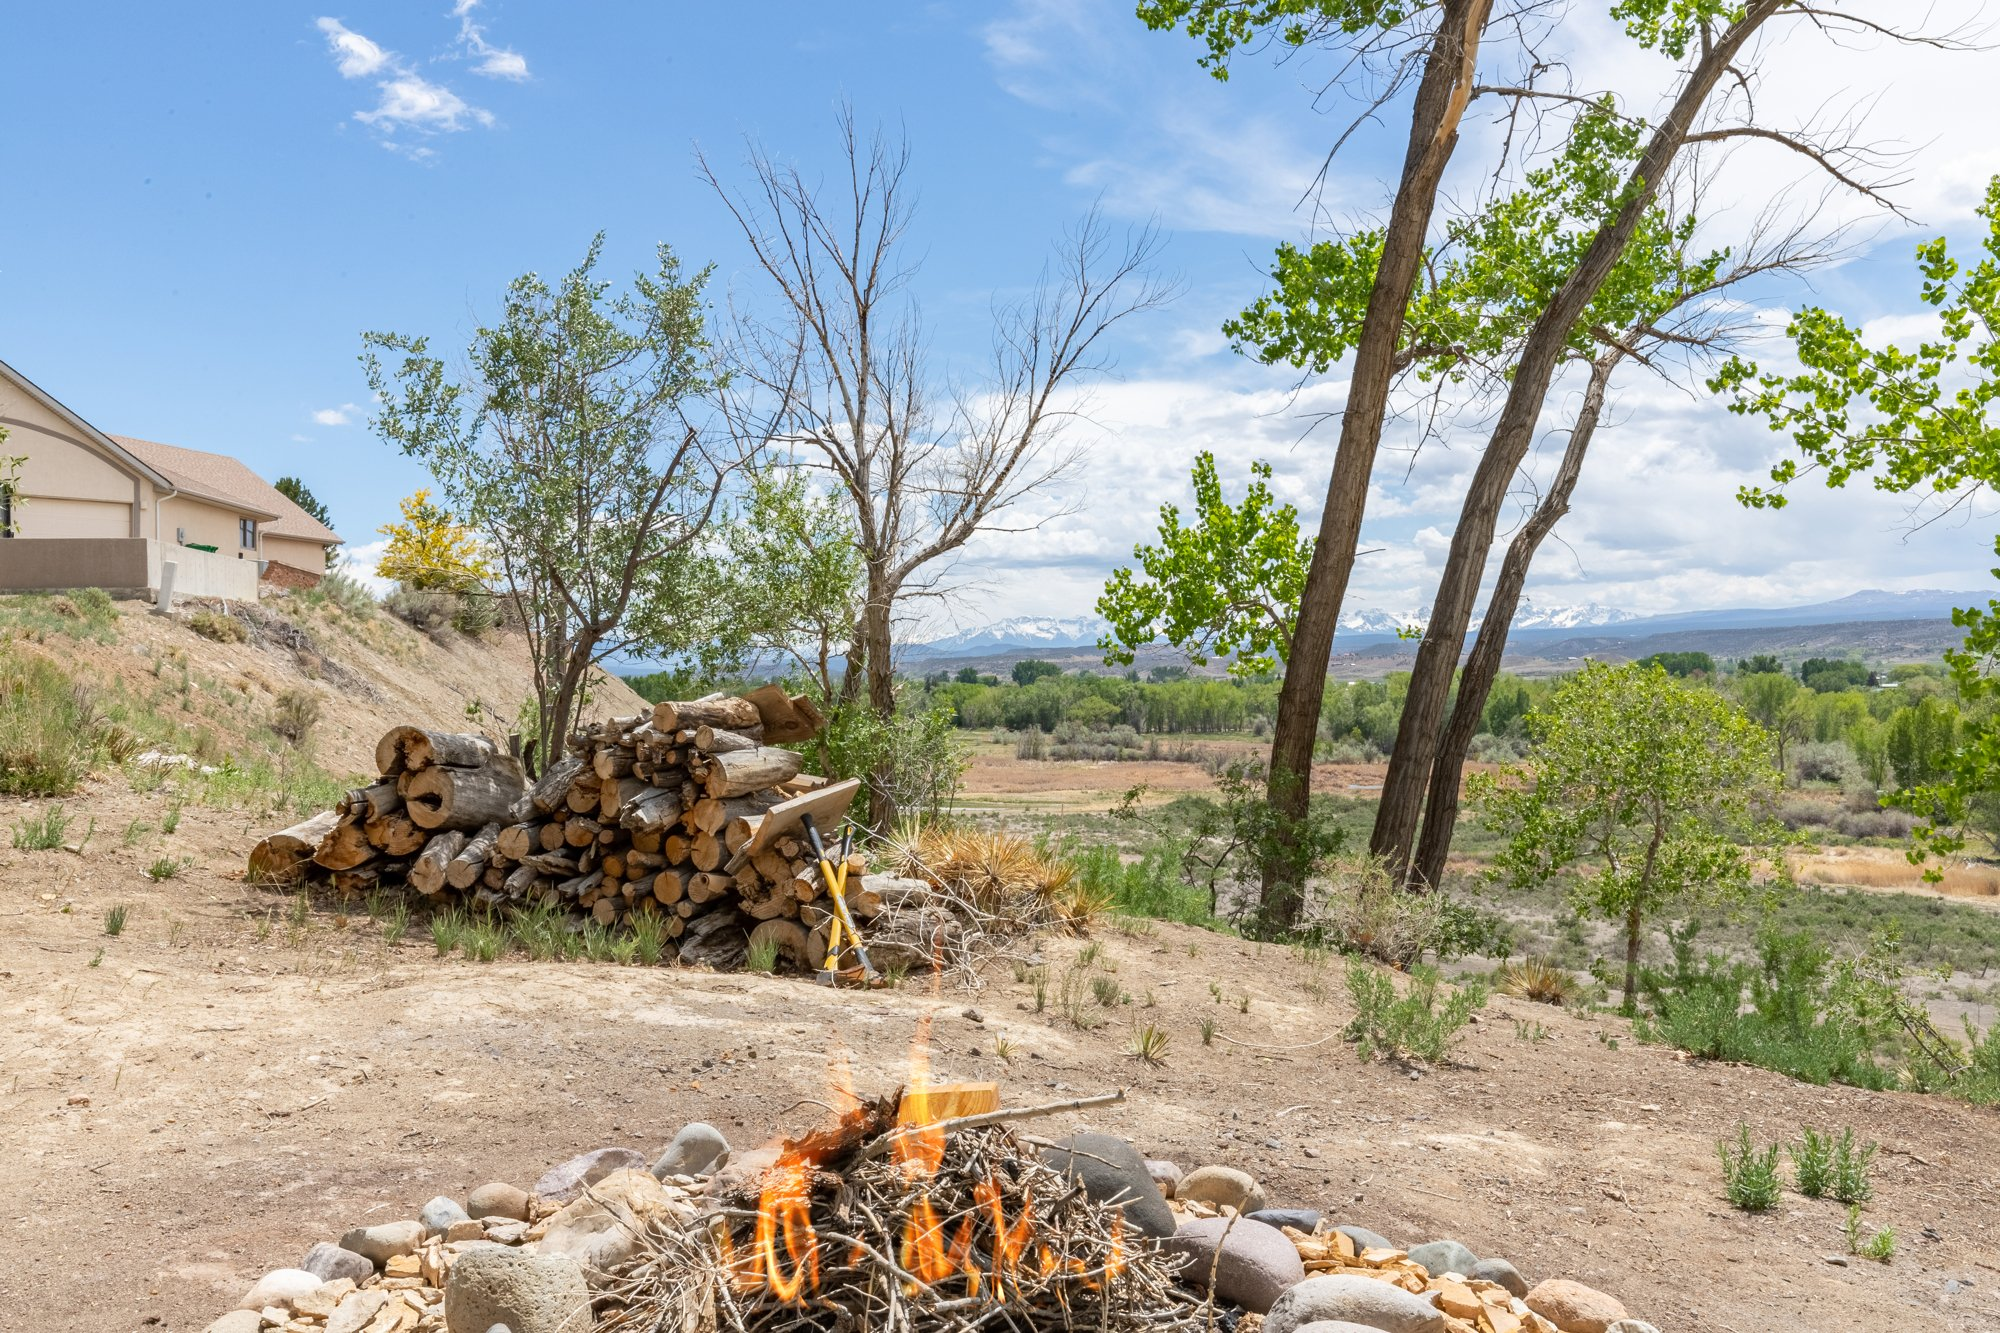 Outdoor Firepit and with Mountain Views - 16955 Wildwood Dr. Montrose, CO 81403 - Atha Team Luxury Real Estate